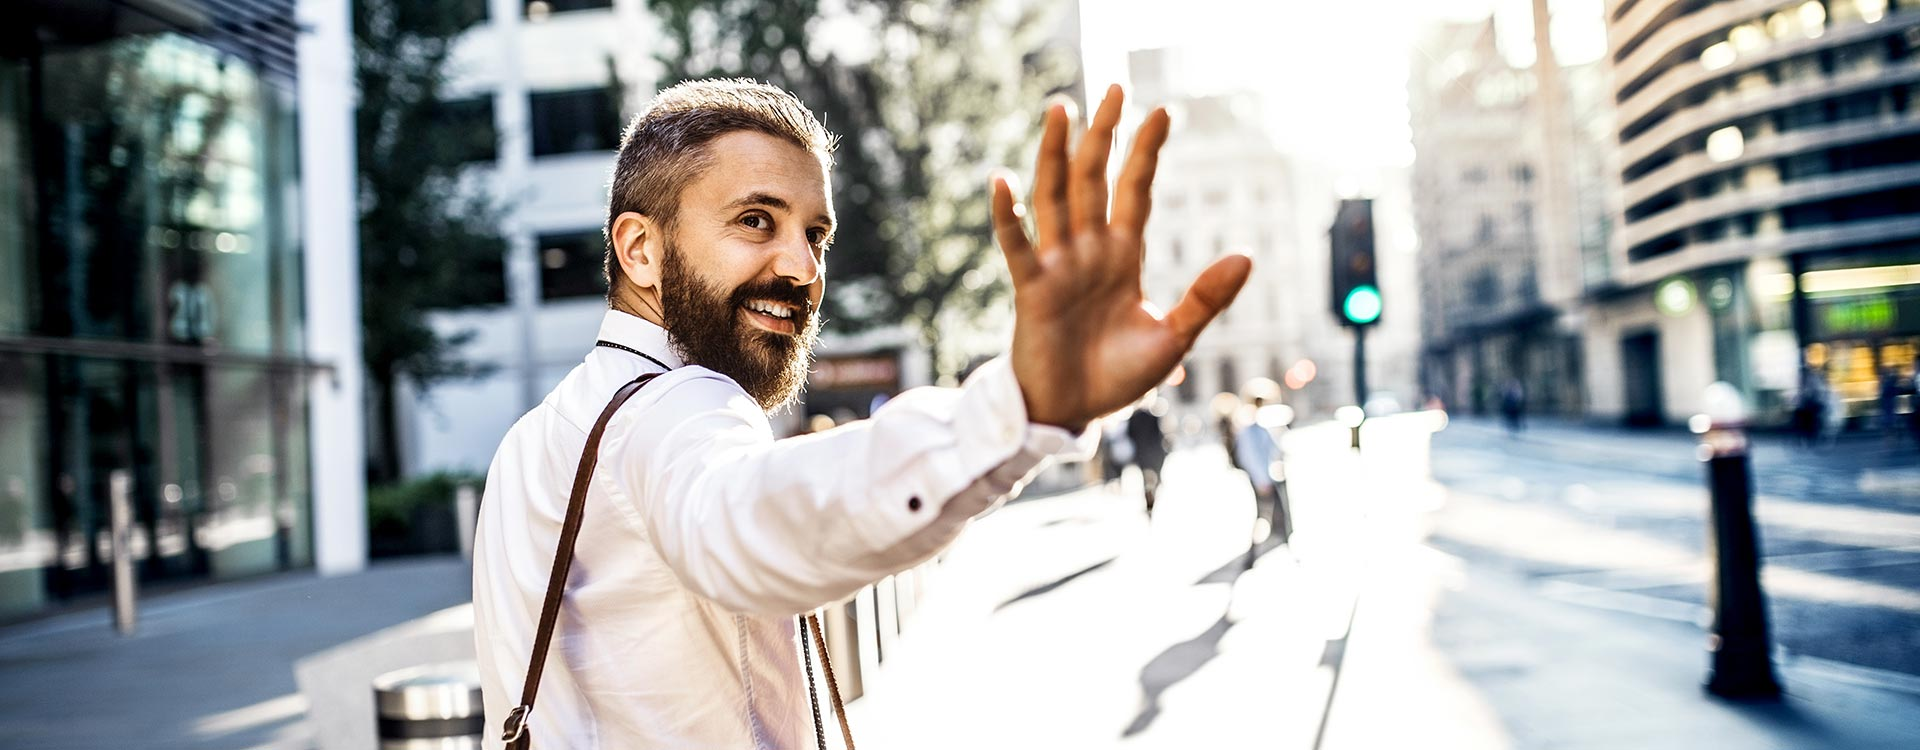 Male Professional Waving Near City Street